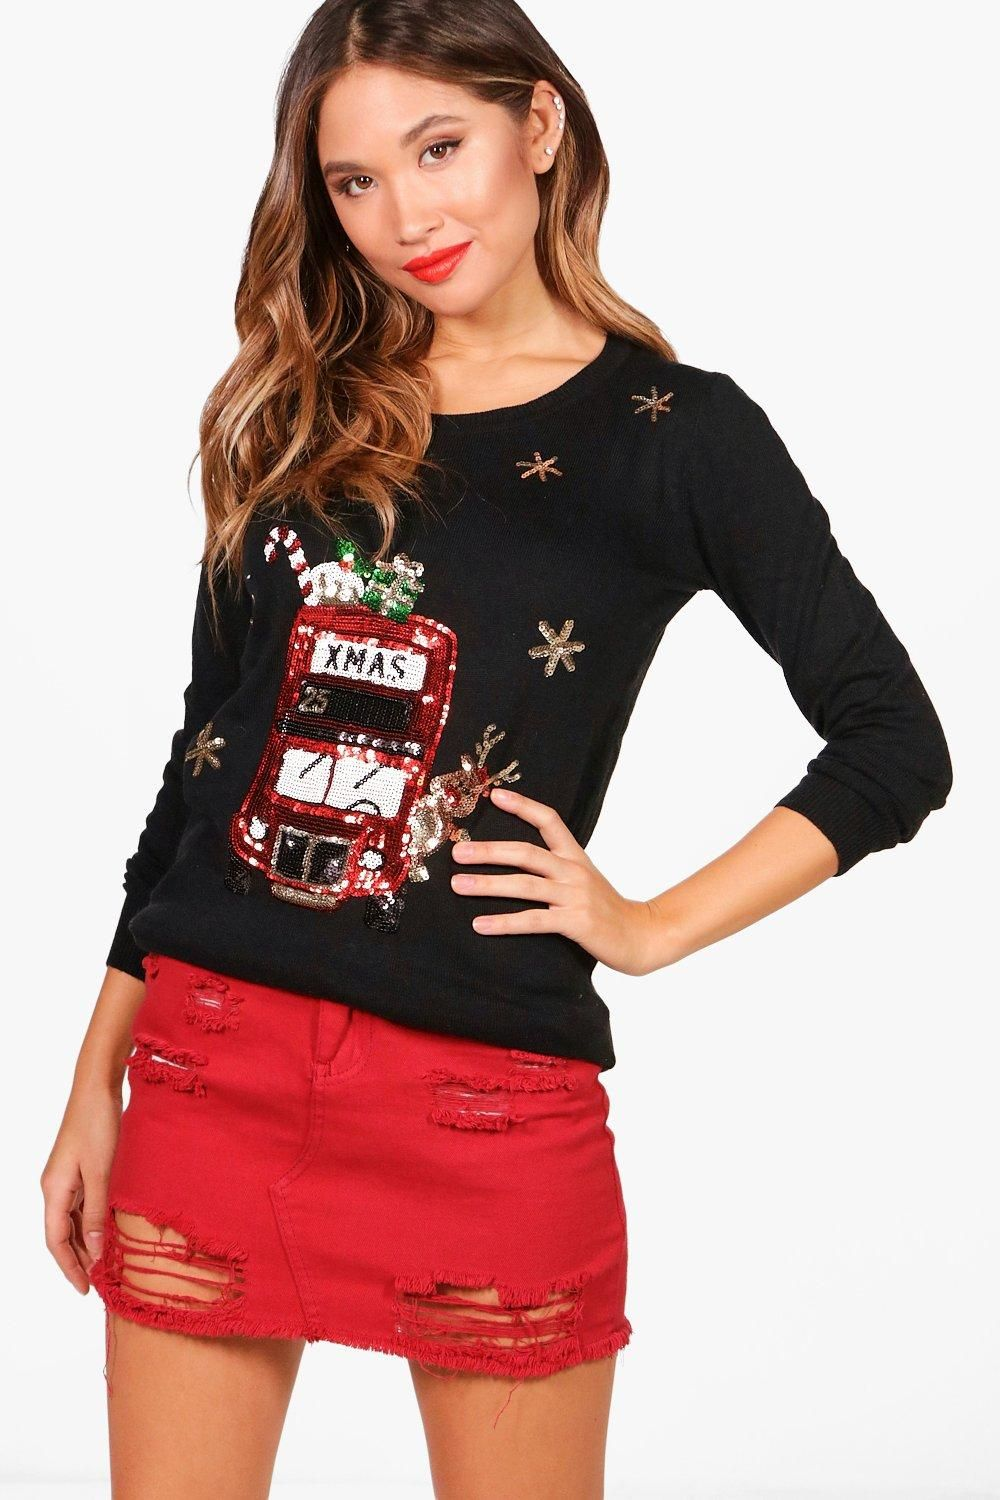 London Bus Sequin Christmas Jumper (With images) Sequin